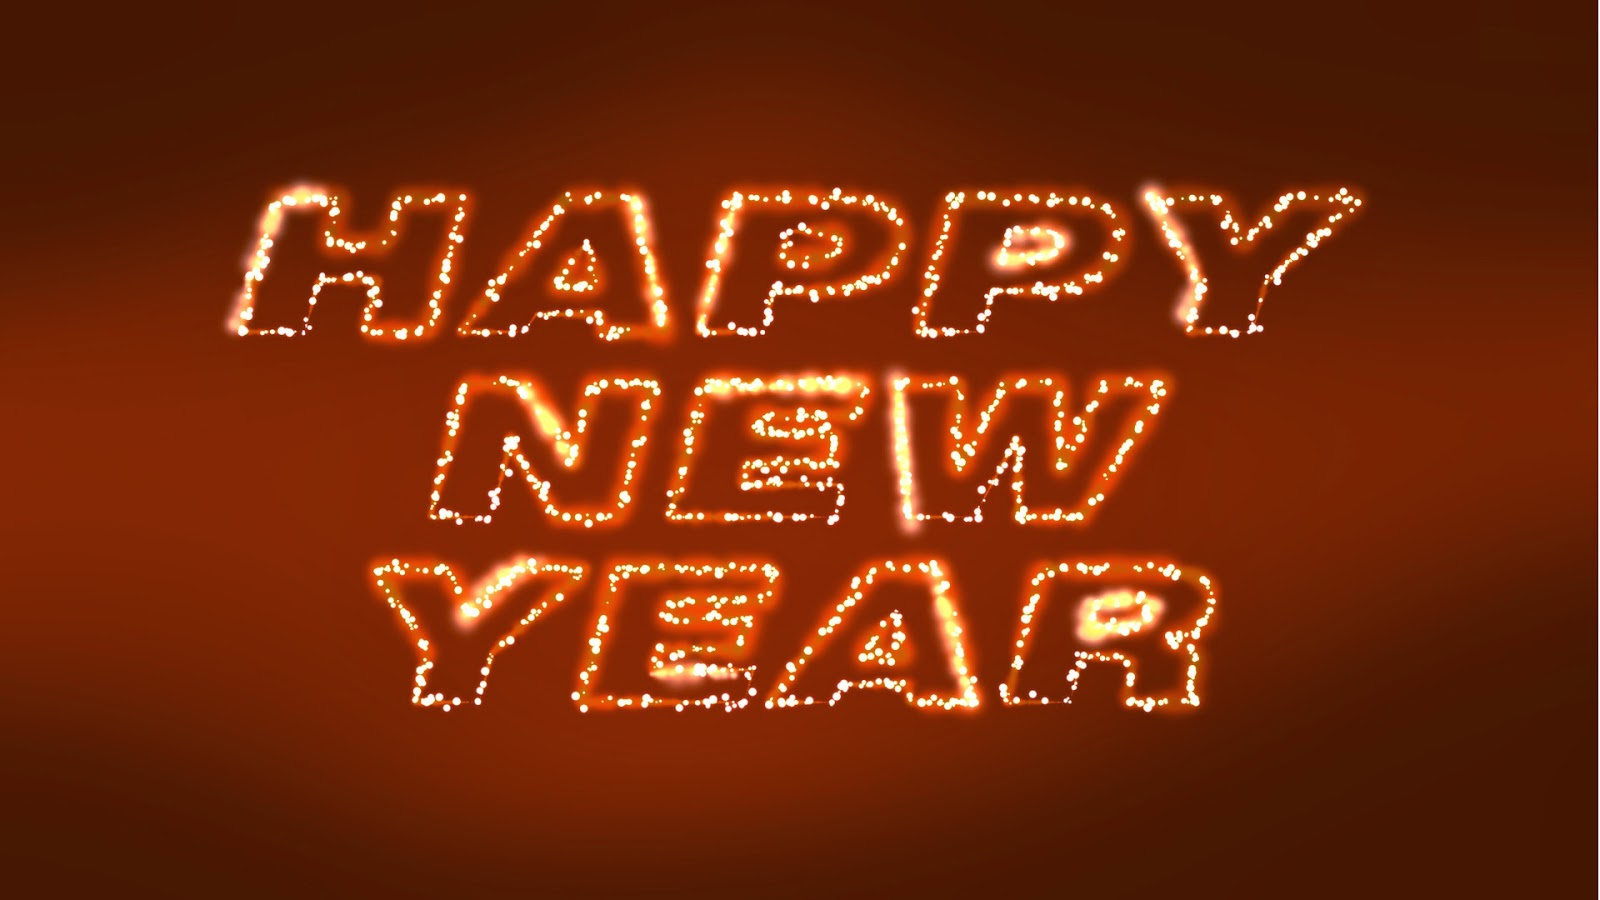 Wallpaper download new year 2015 - Happy New Year 2015 Hd Desktop Wallpaper Download Happy New Year